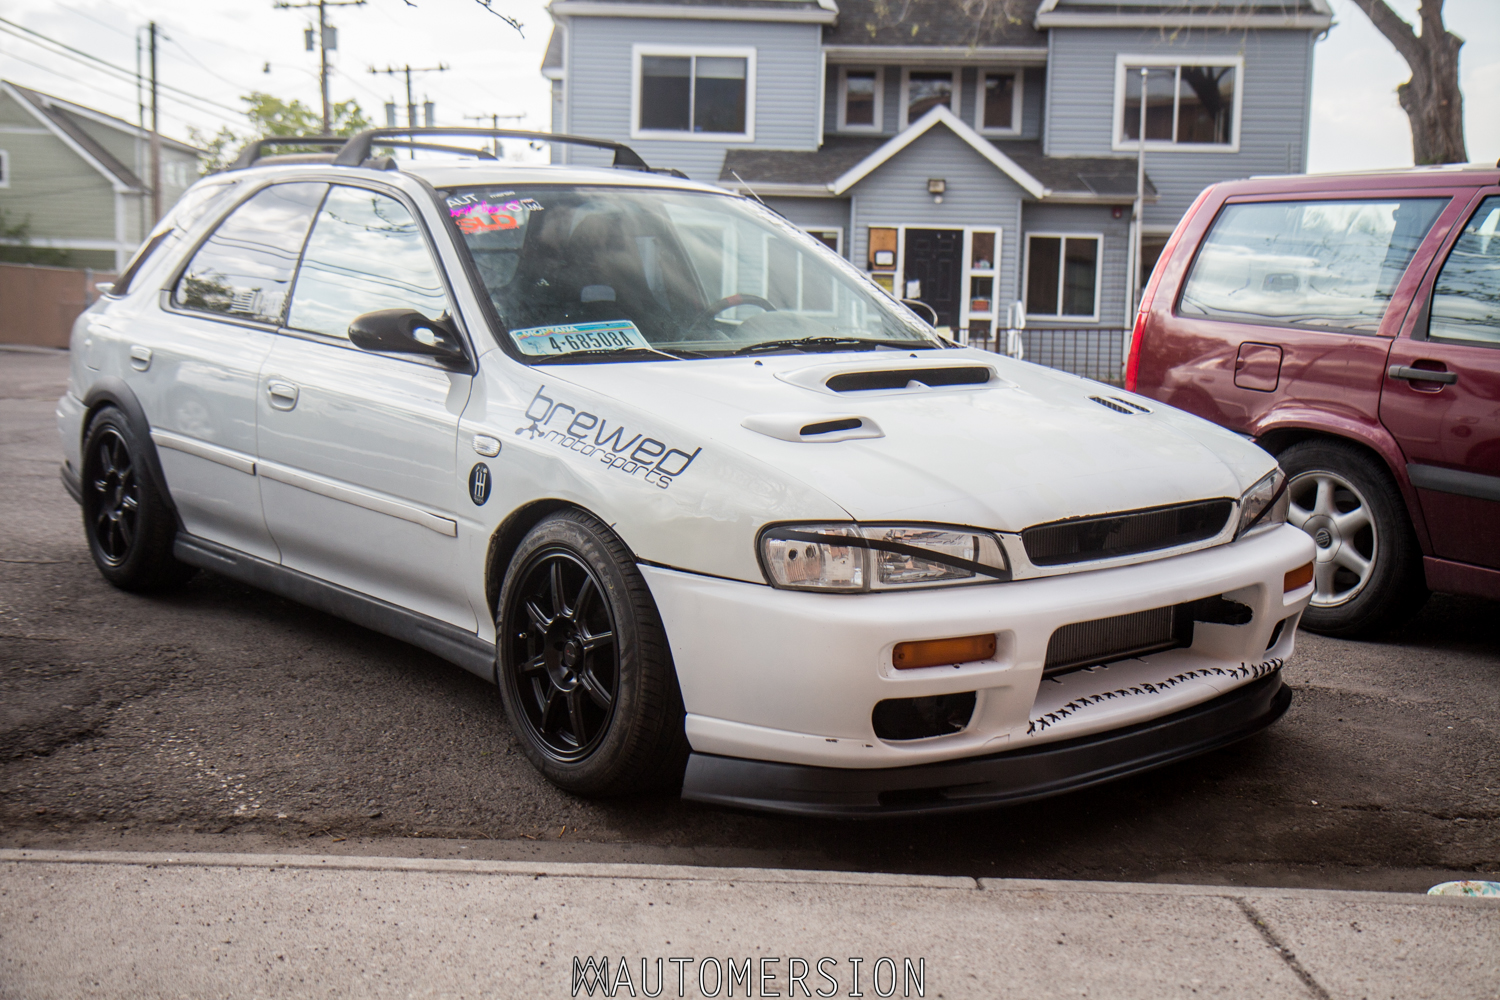 how to fit a honda front lip on a subaru automersion http www automersion com 2015 05 how to fit a honda front lip on a subaru